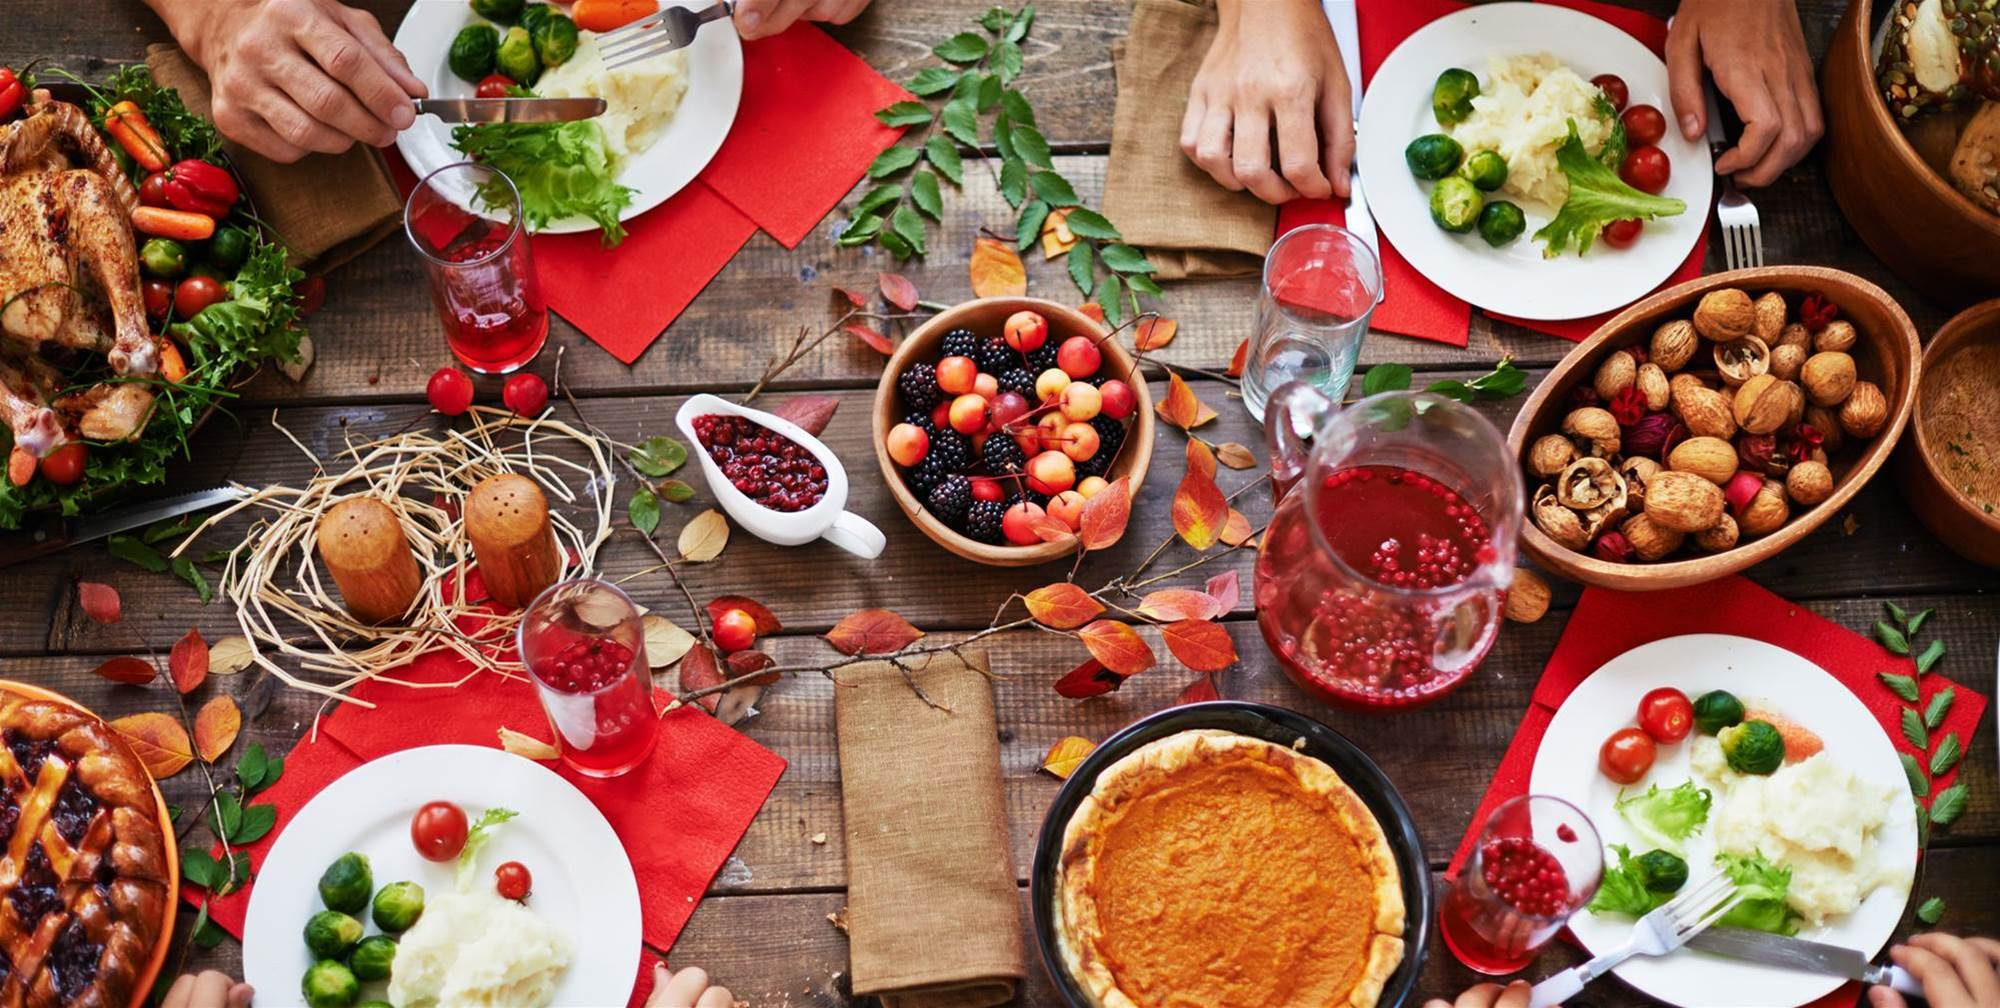 20 Ridiculously Simple Ways Nutritionists Avoid Holiday Weight Gain